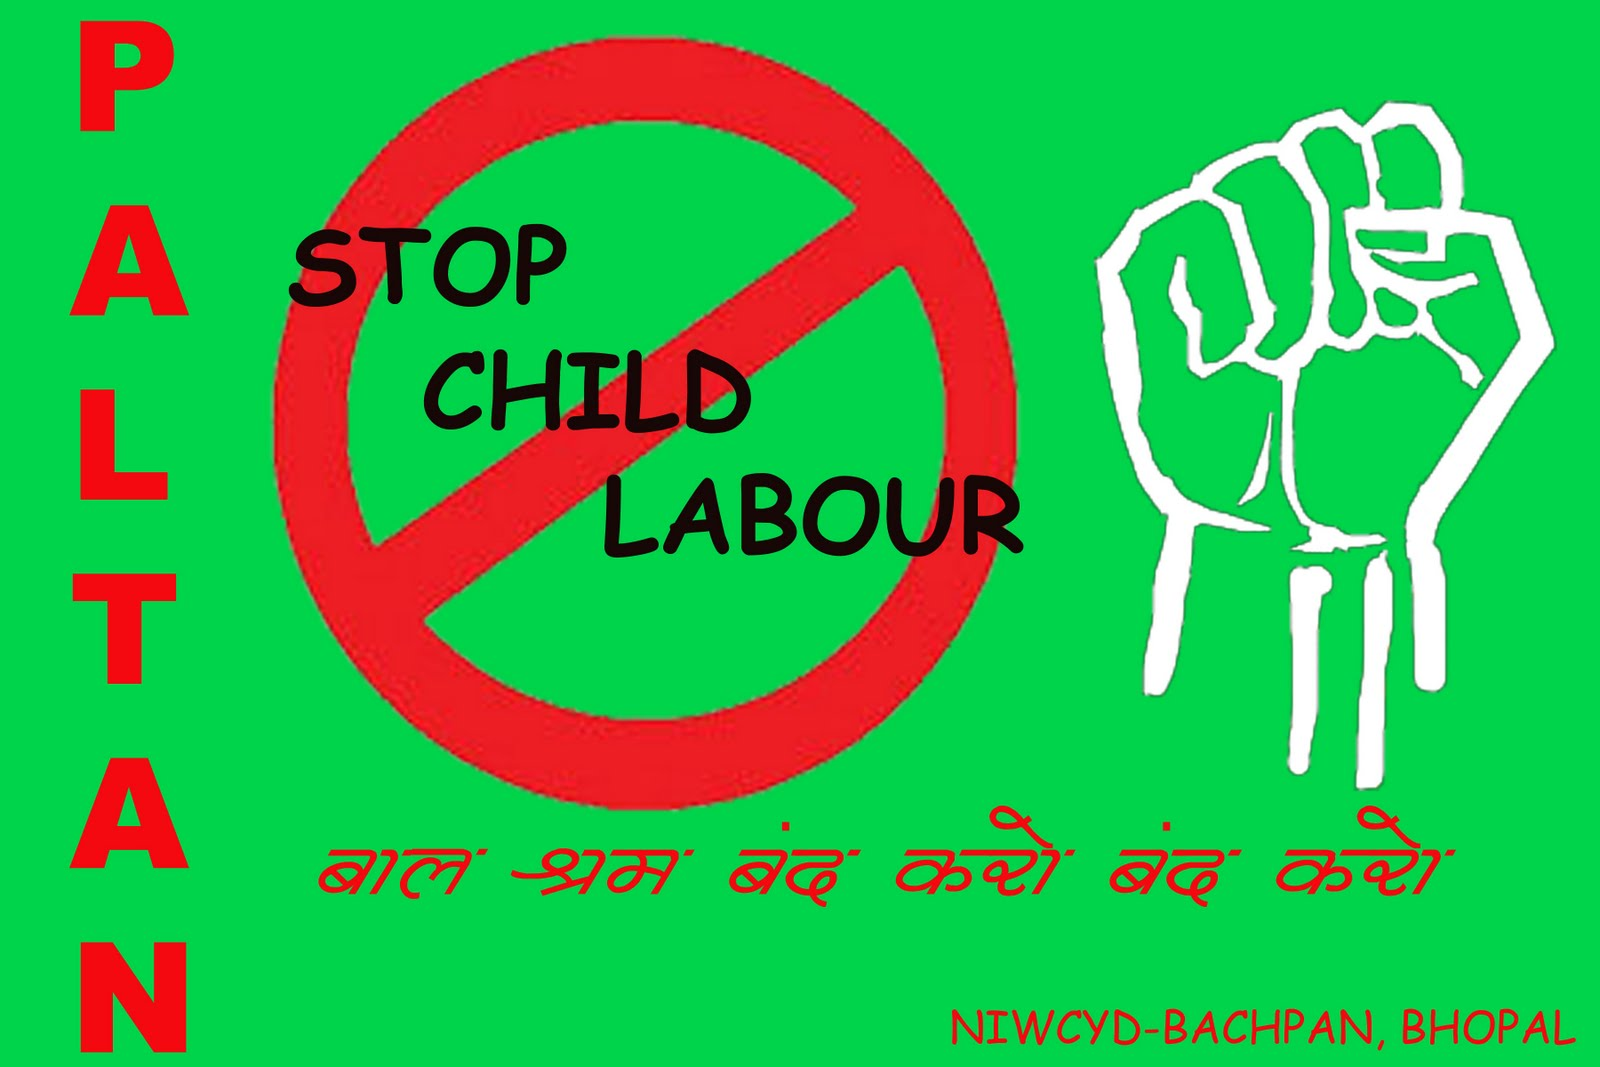 hindi speech on child labour Child labour is the practice where children engage in economic activity, on part or full-time basis the practice deprives children of their childhood, and is harmful to india formulated a national policy on child labour in 1987 this policy seeks to adopt a gradual & sequential approach with a focus on.